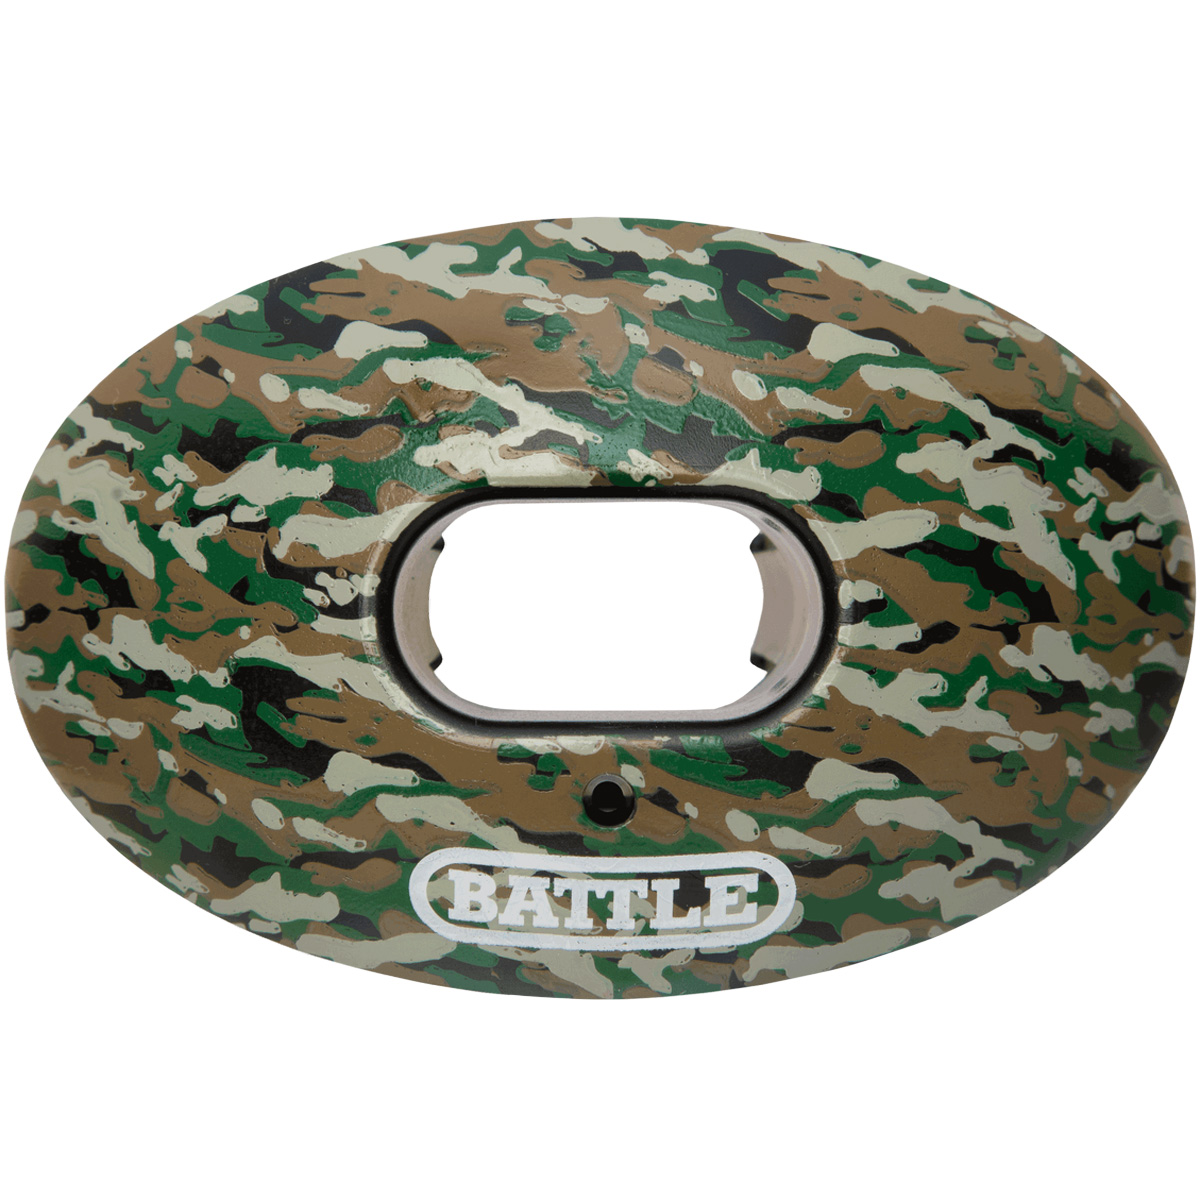 Battle Sports Science Limited Edition Oxygen Lip Protector ...